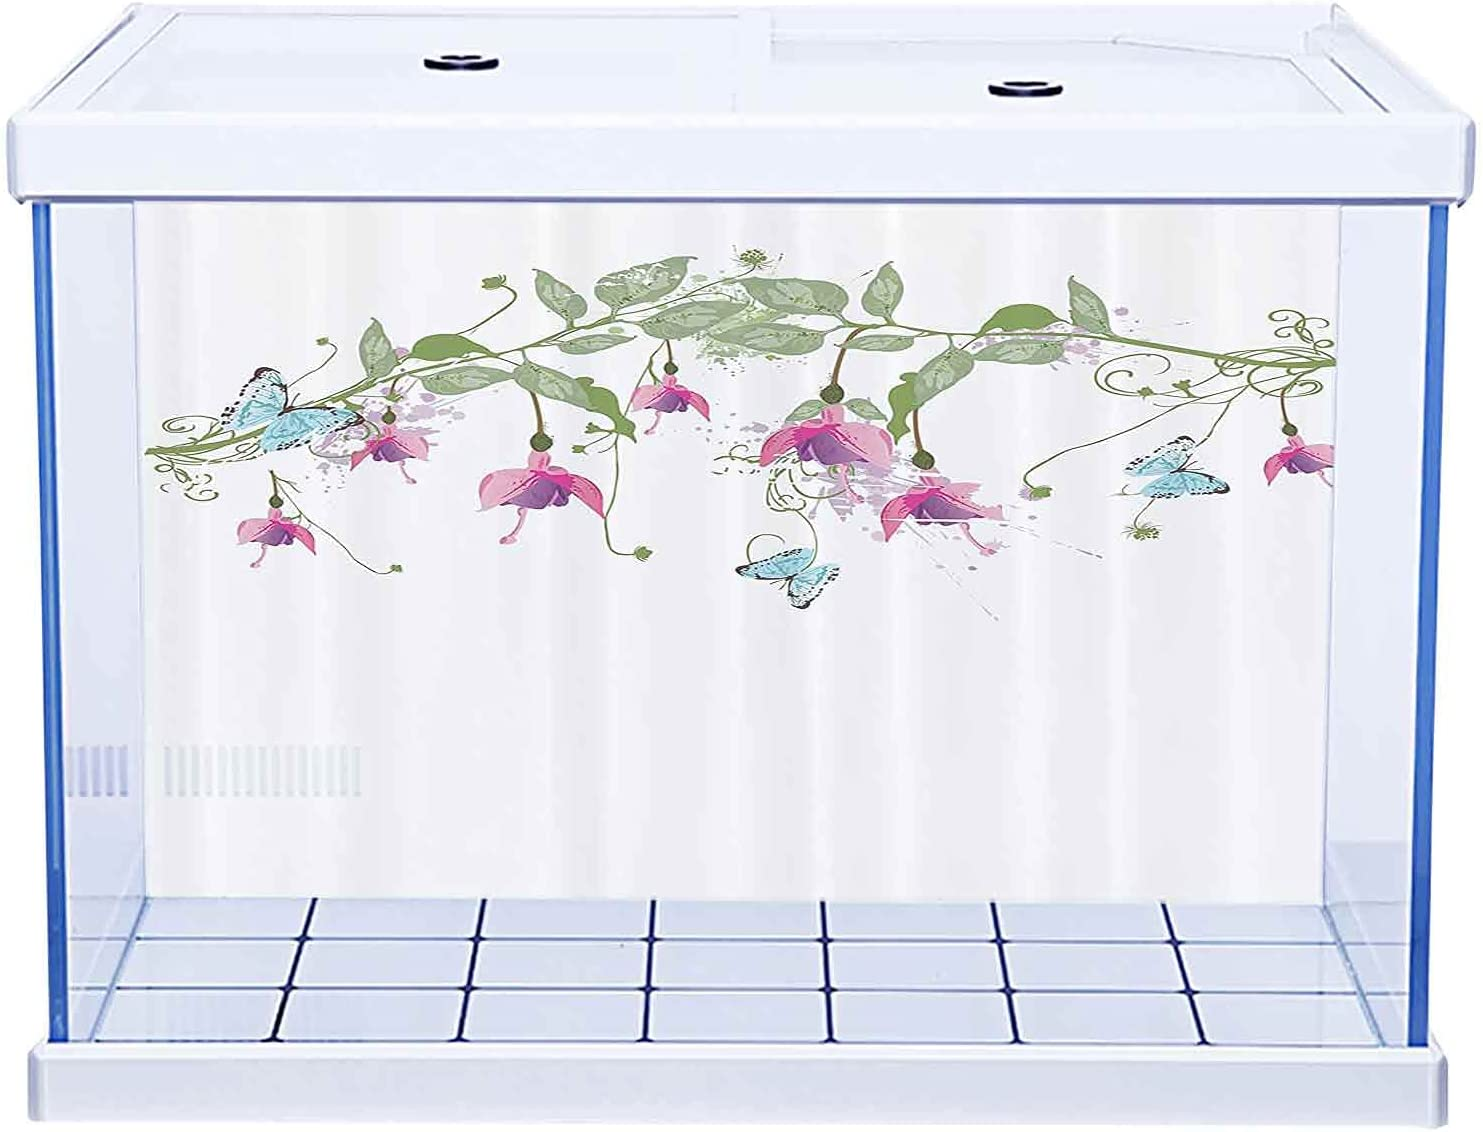 Fish Tank Undersea World Background San Francisco Mall Challenge the lowest price Flower Collectio House Decor